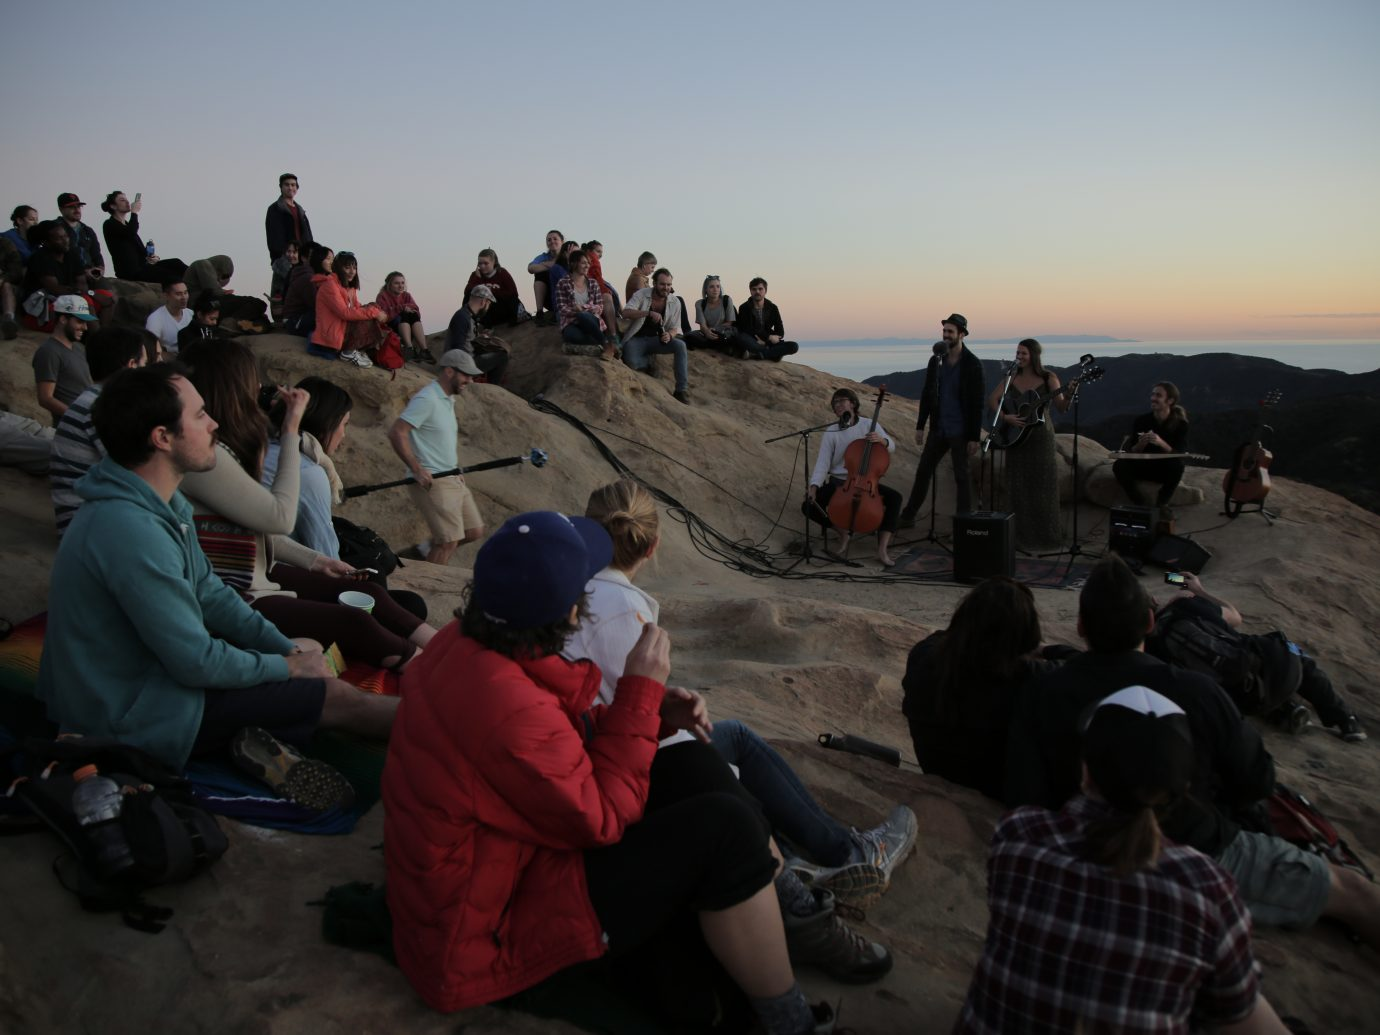 crowd at dusk on large rock watching people perform